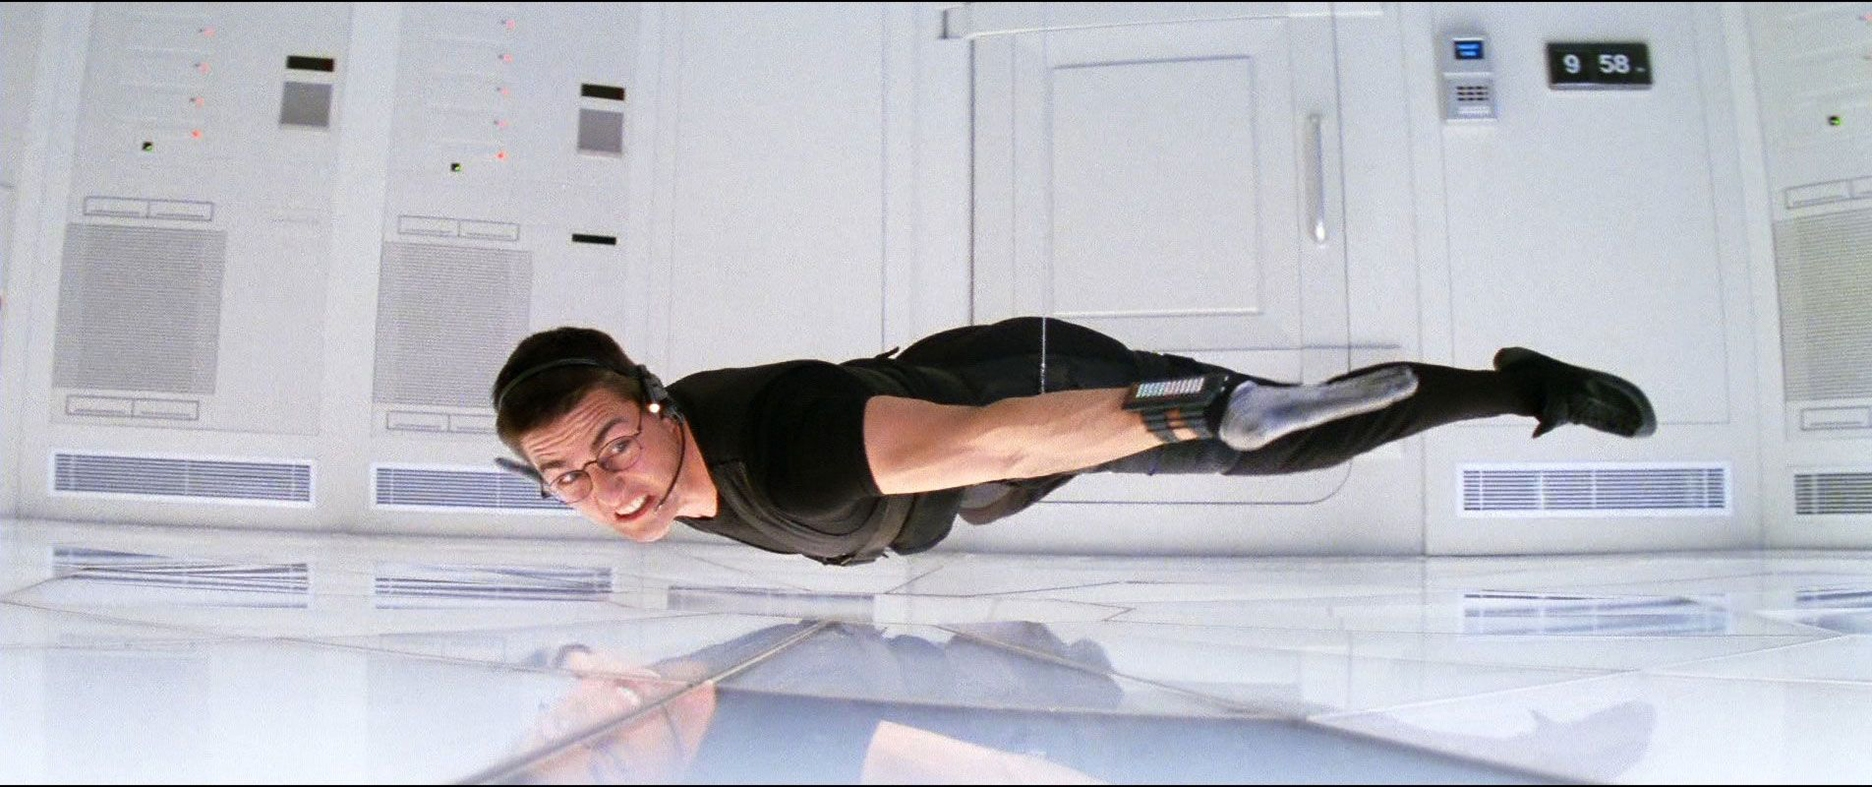 Mission Impossible Featured